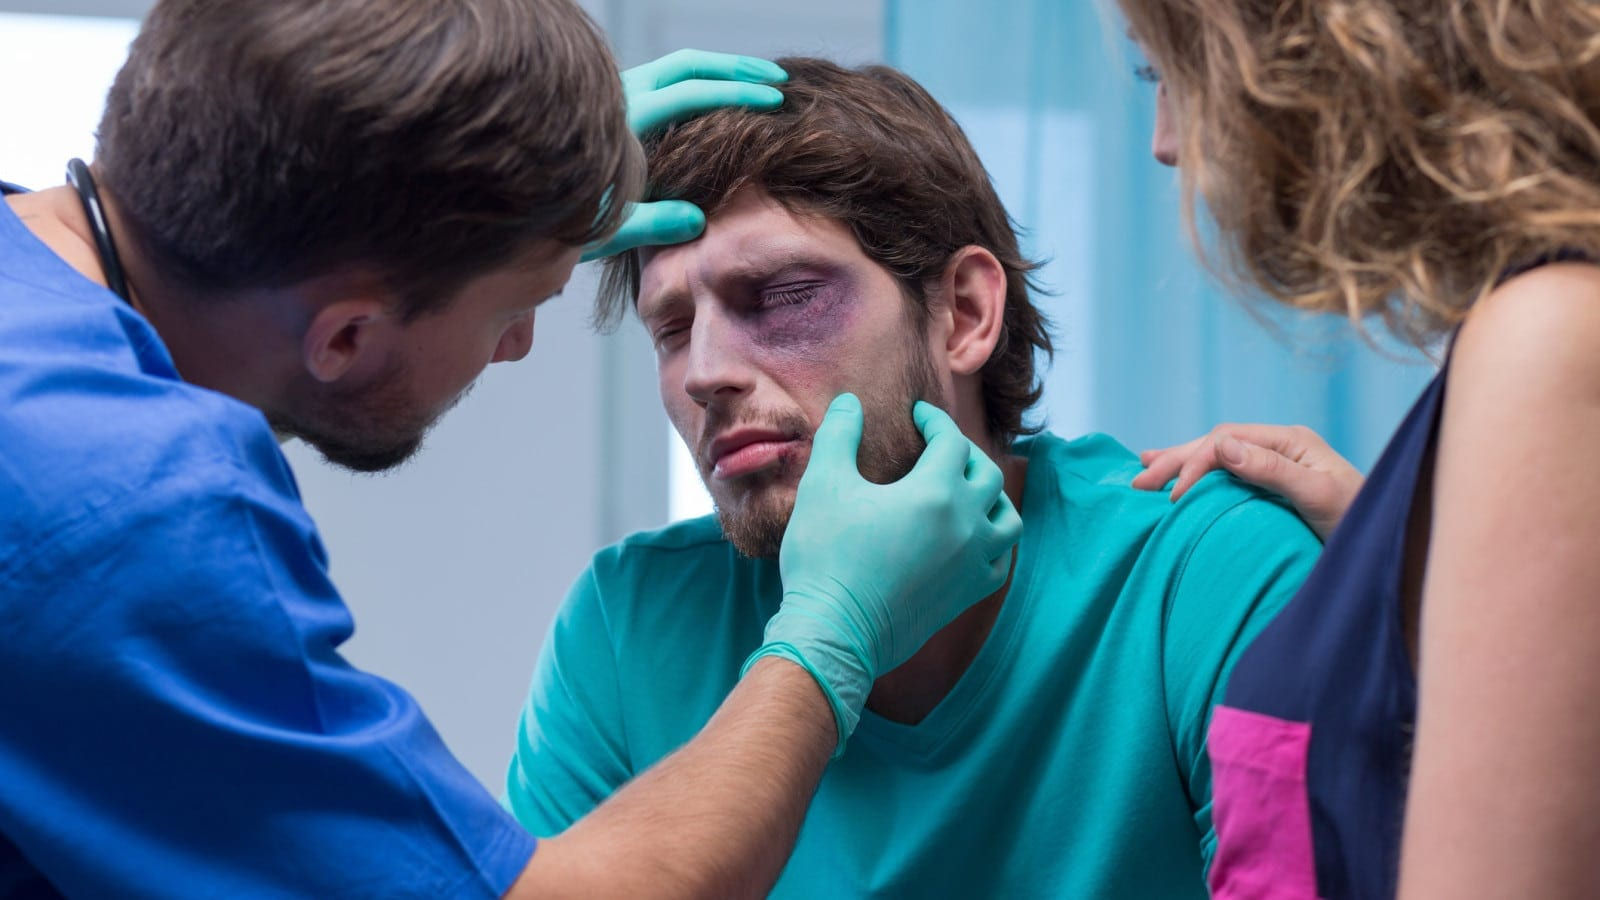 Man Having His Eye Examined By A Male Nurse Stock Photo